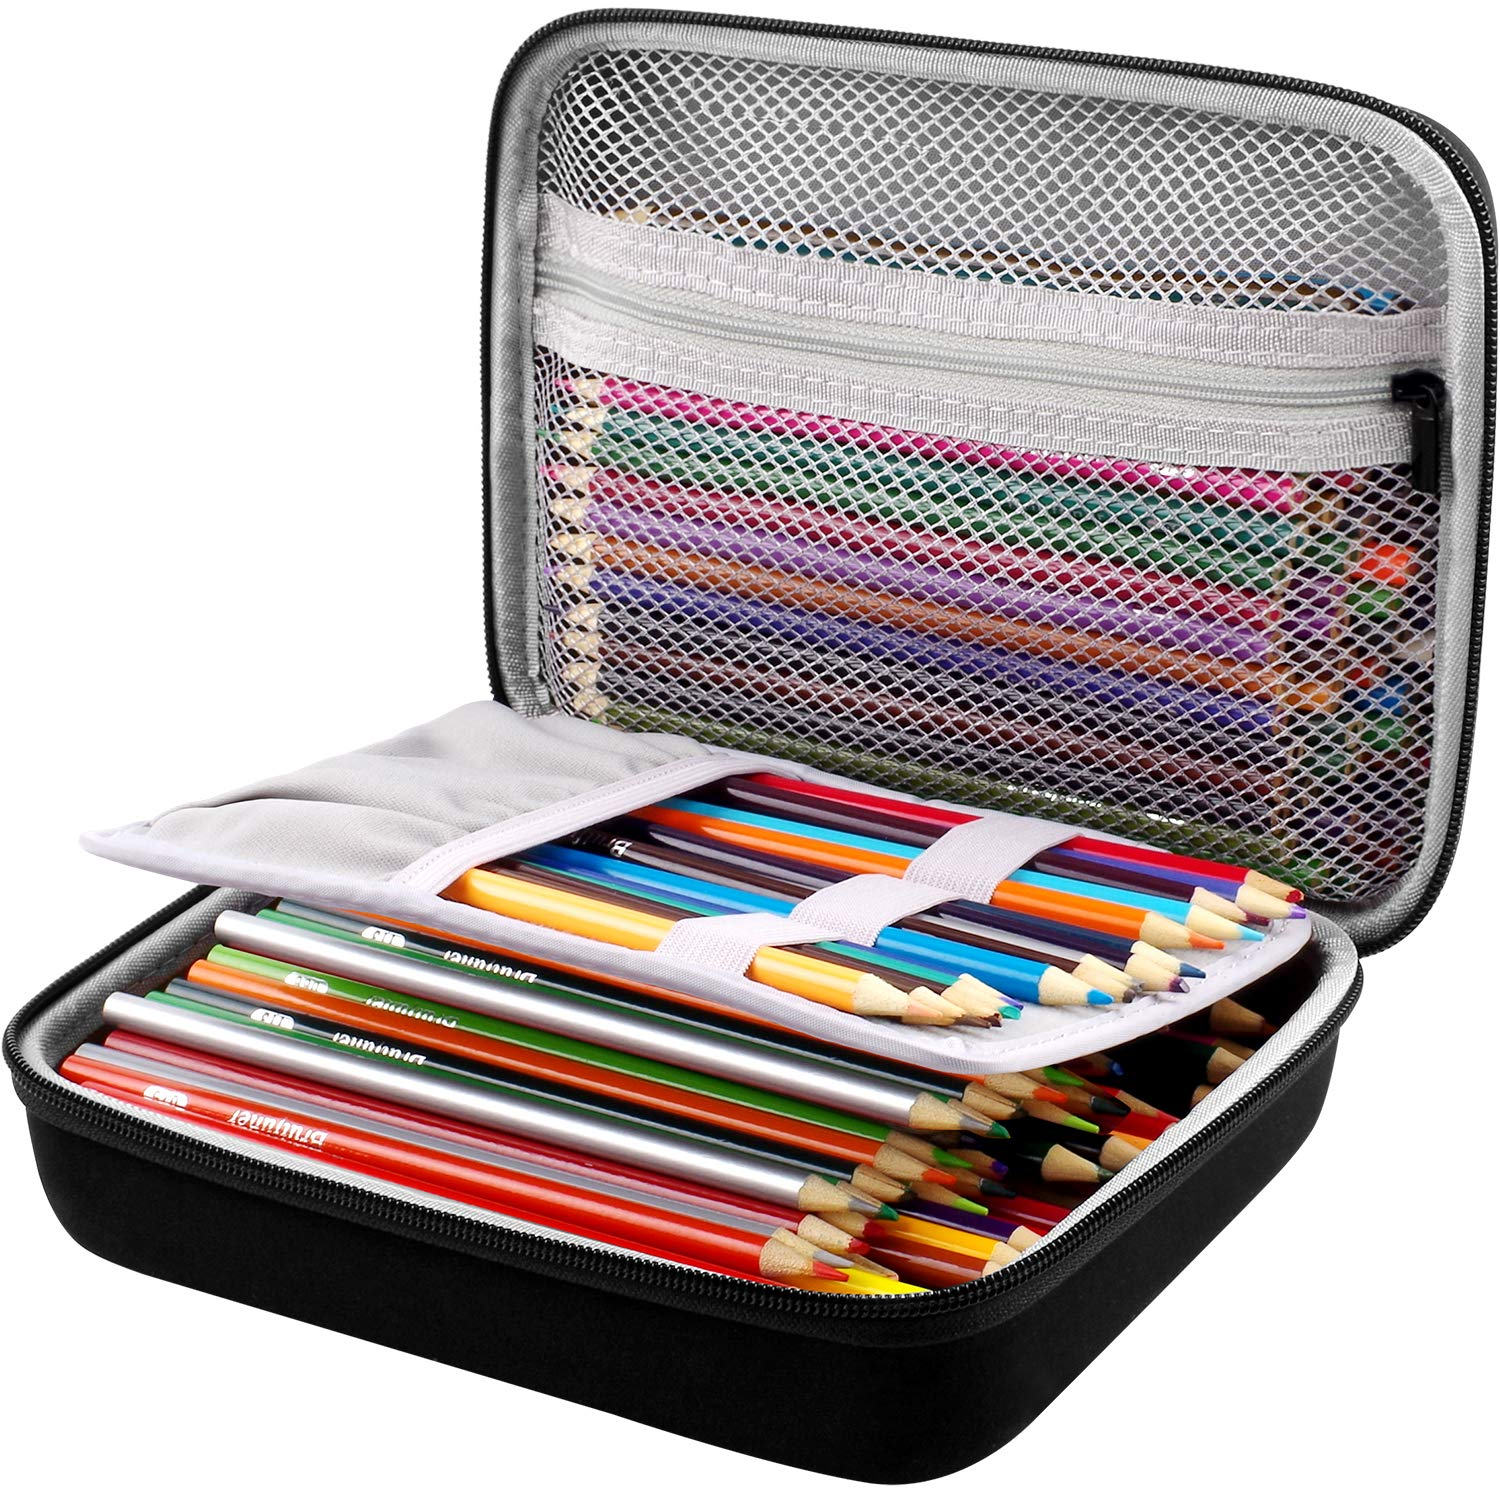 Markers Crayons Sticky Notes Protective Pencil Case Pen Bag for 200 Colored Pencils or 130 Gel Pens Eraser and so on for Kids /& Adults Tape